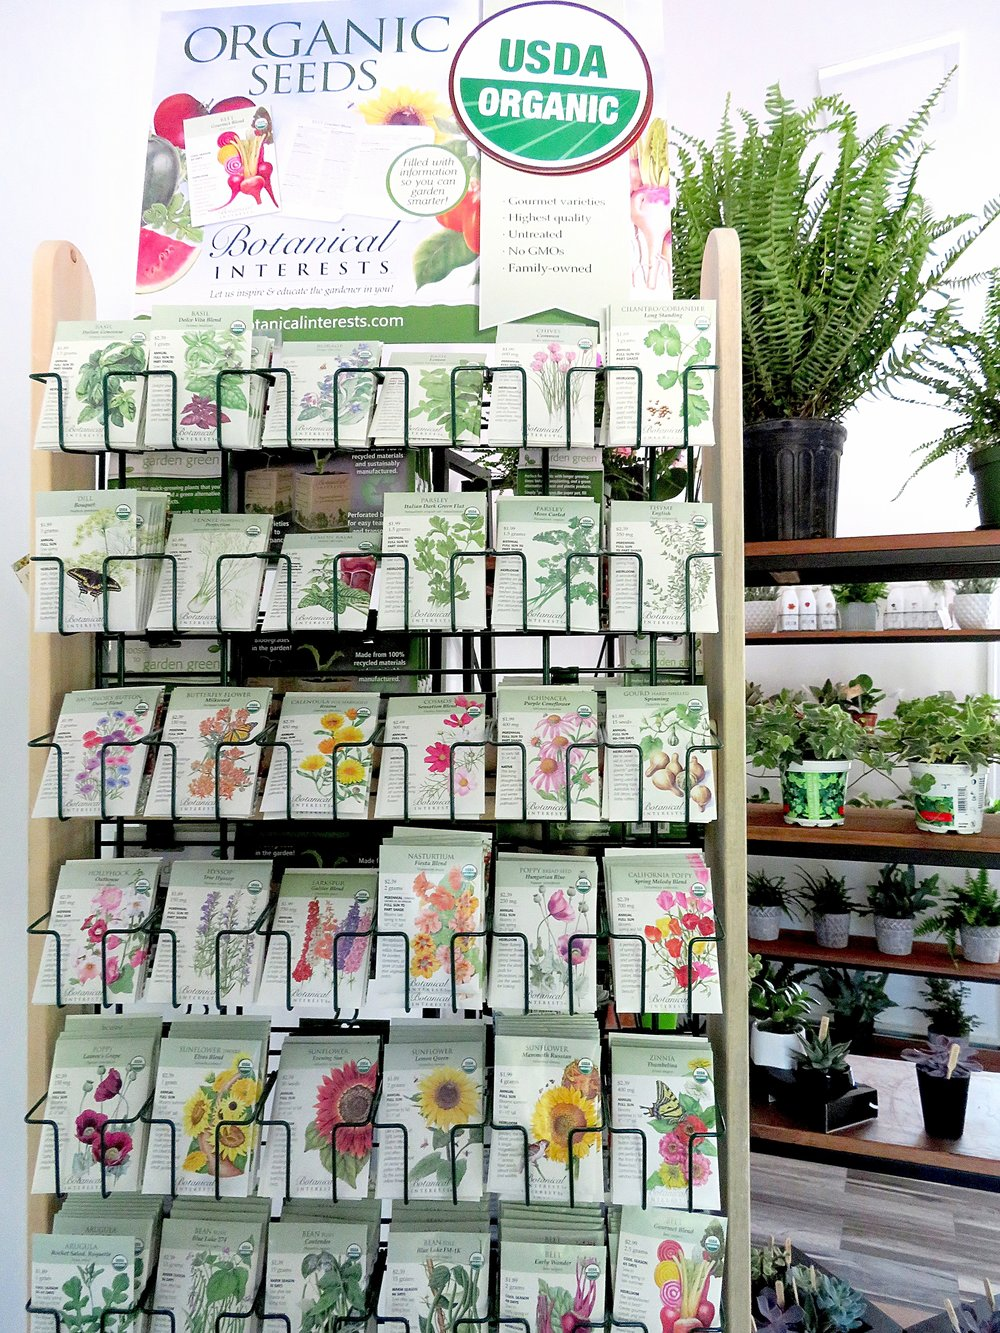 Weaver Gardens_Plants_Planters_Flowers_Garden_Gardening_Retail_Nursery_Home_Decor_Gifts_Larchmont_NY_Local_Shop_Planting_Landscape_Landscaping_Westchester County_Store_Shopping_Buy_Products_Services_Morano Landscape_Seeds